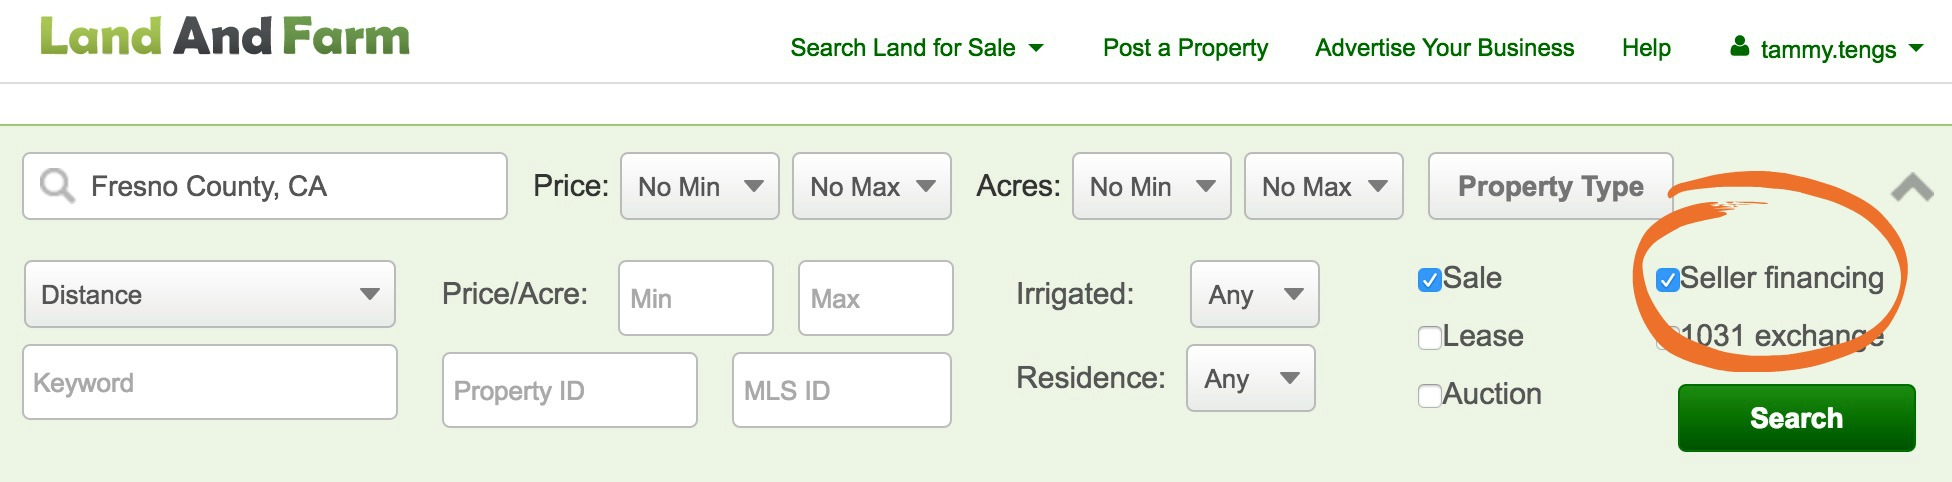 A Search Of Landandfarm On Fresno County California, For Example, Yielded  19 Ownerfinanced Parcels For Sale